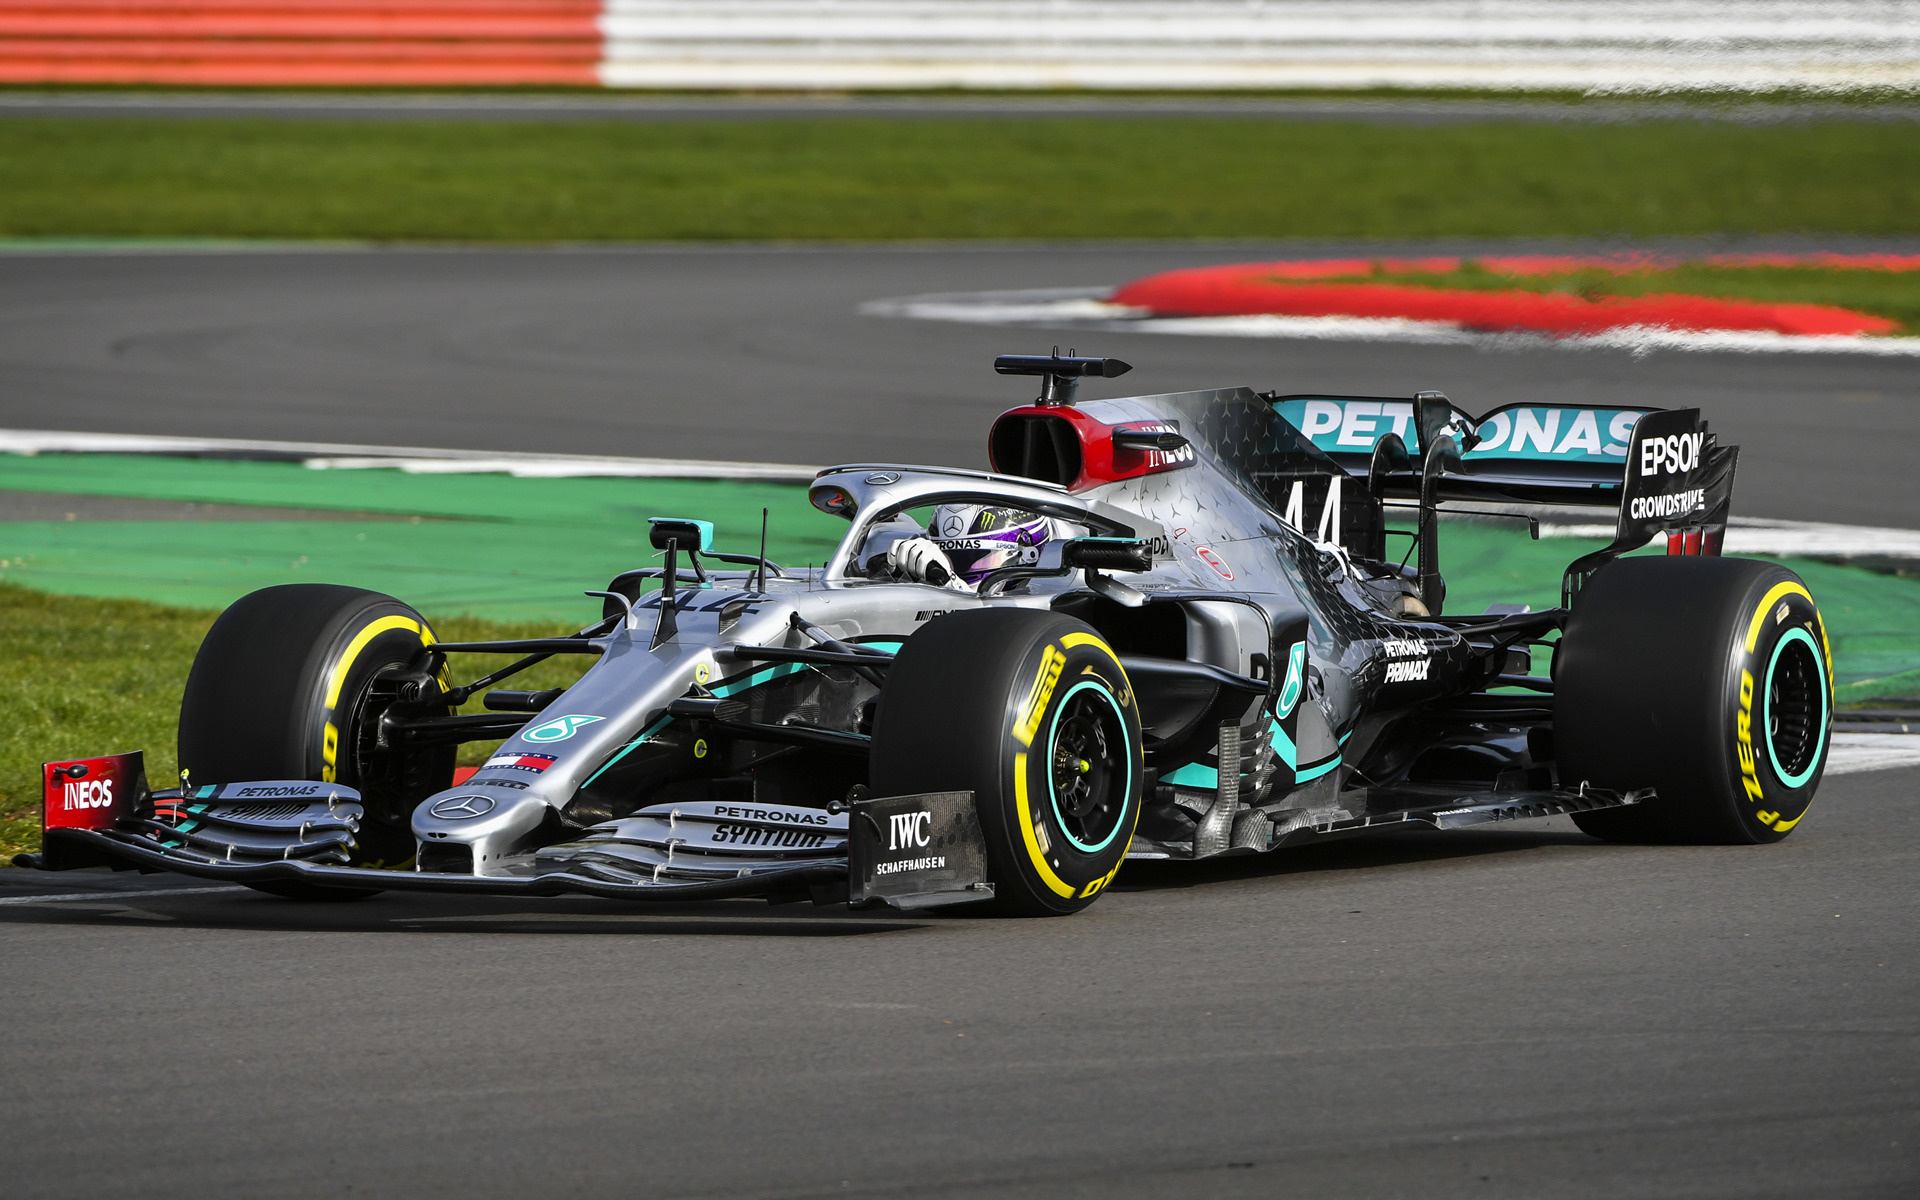 2020 Mercedes AMG F1 W11 EQ Performance   Wallpapers and HD Images 1920x1200